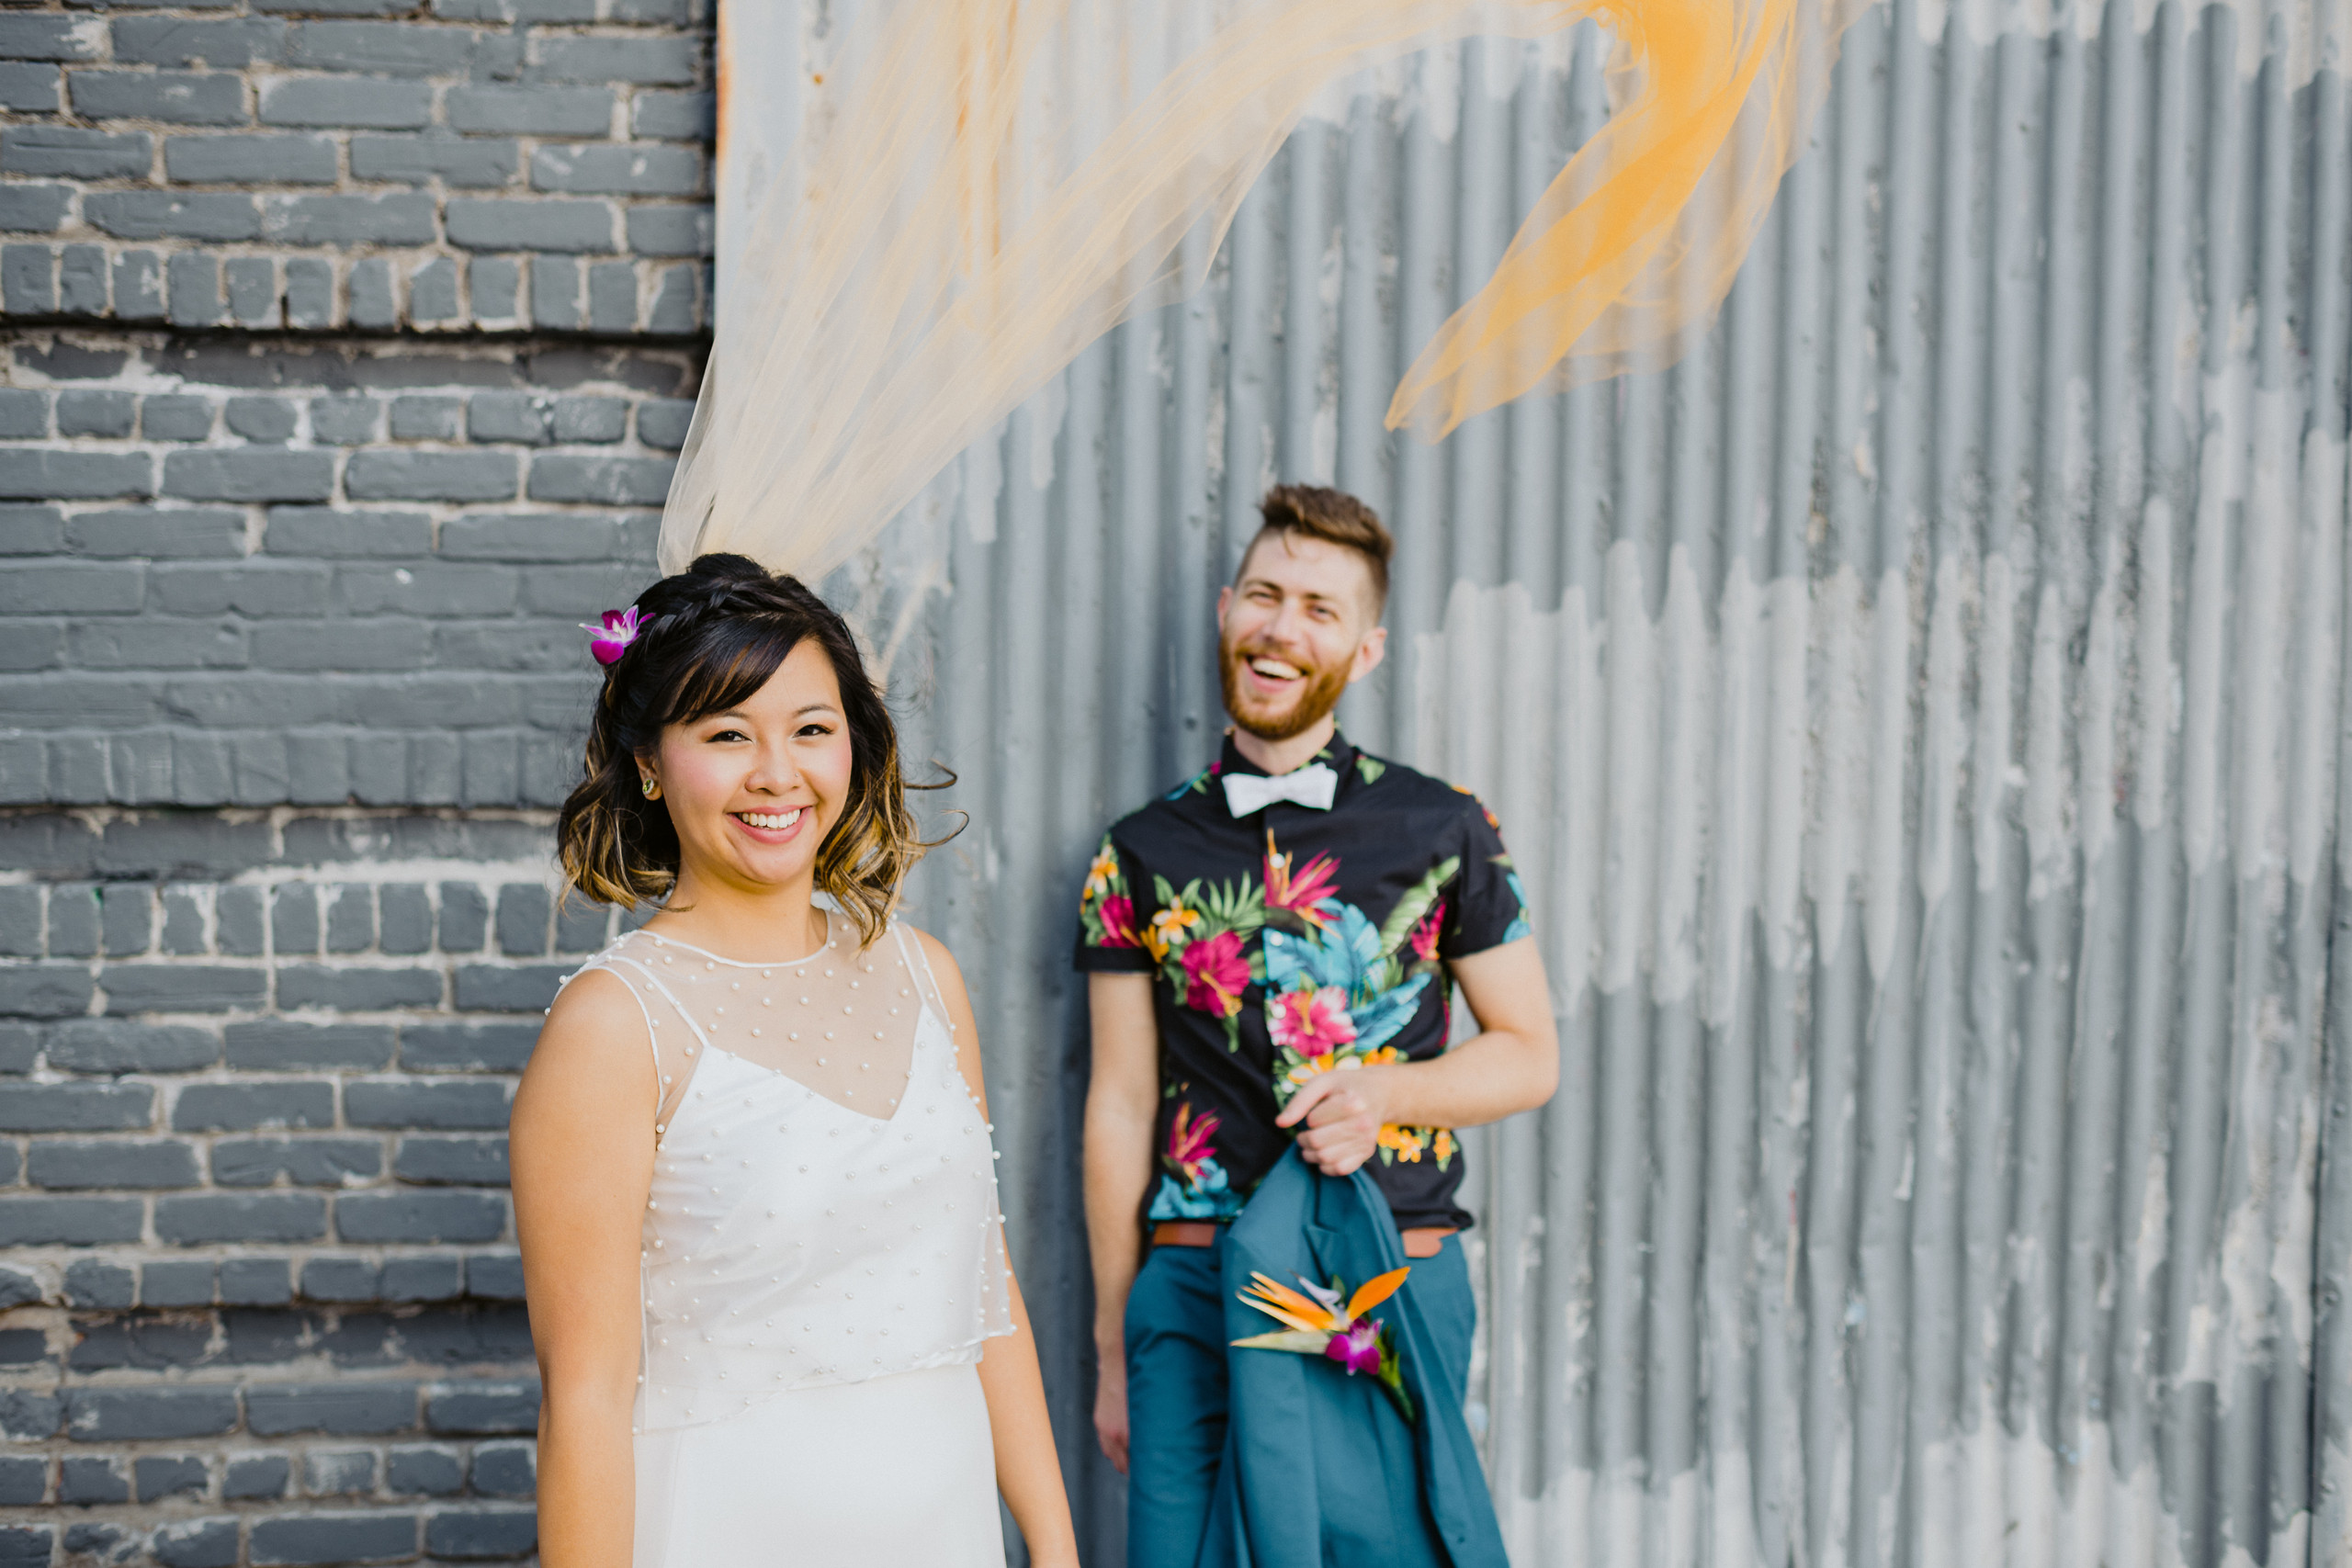 Smiling interracial couple, Chinese bride with purple floral in her braided hair and ombre yellow veil floating mid-air that's swooping towards with anglo-american groom wearing a black tropical collared shirt with bright pink and teal details and white bowtie against a grey brick background in Greenpoint Brooklyn